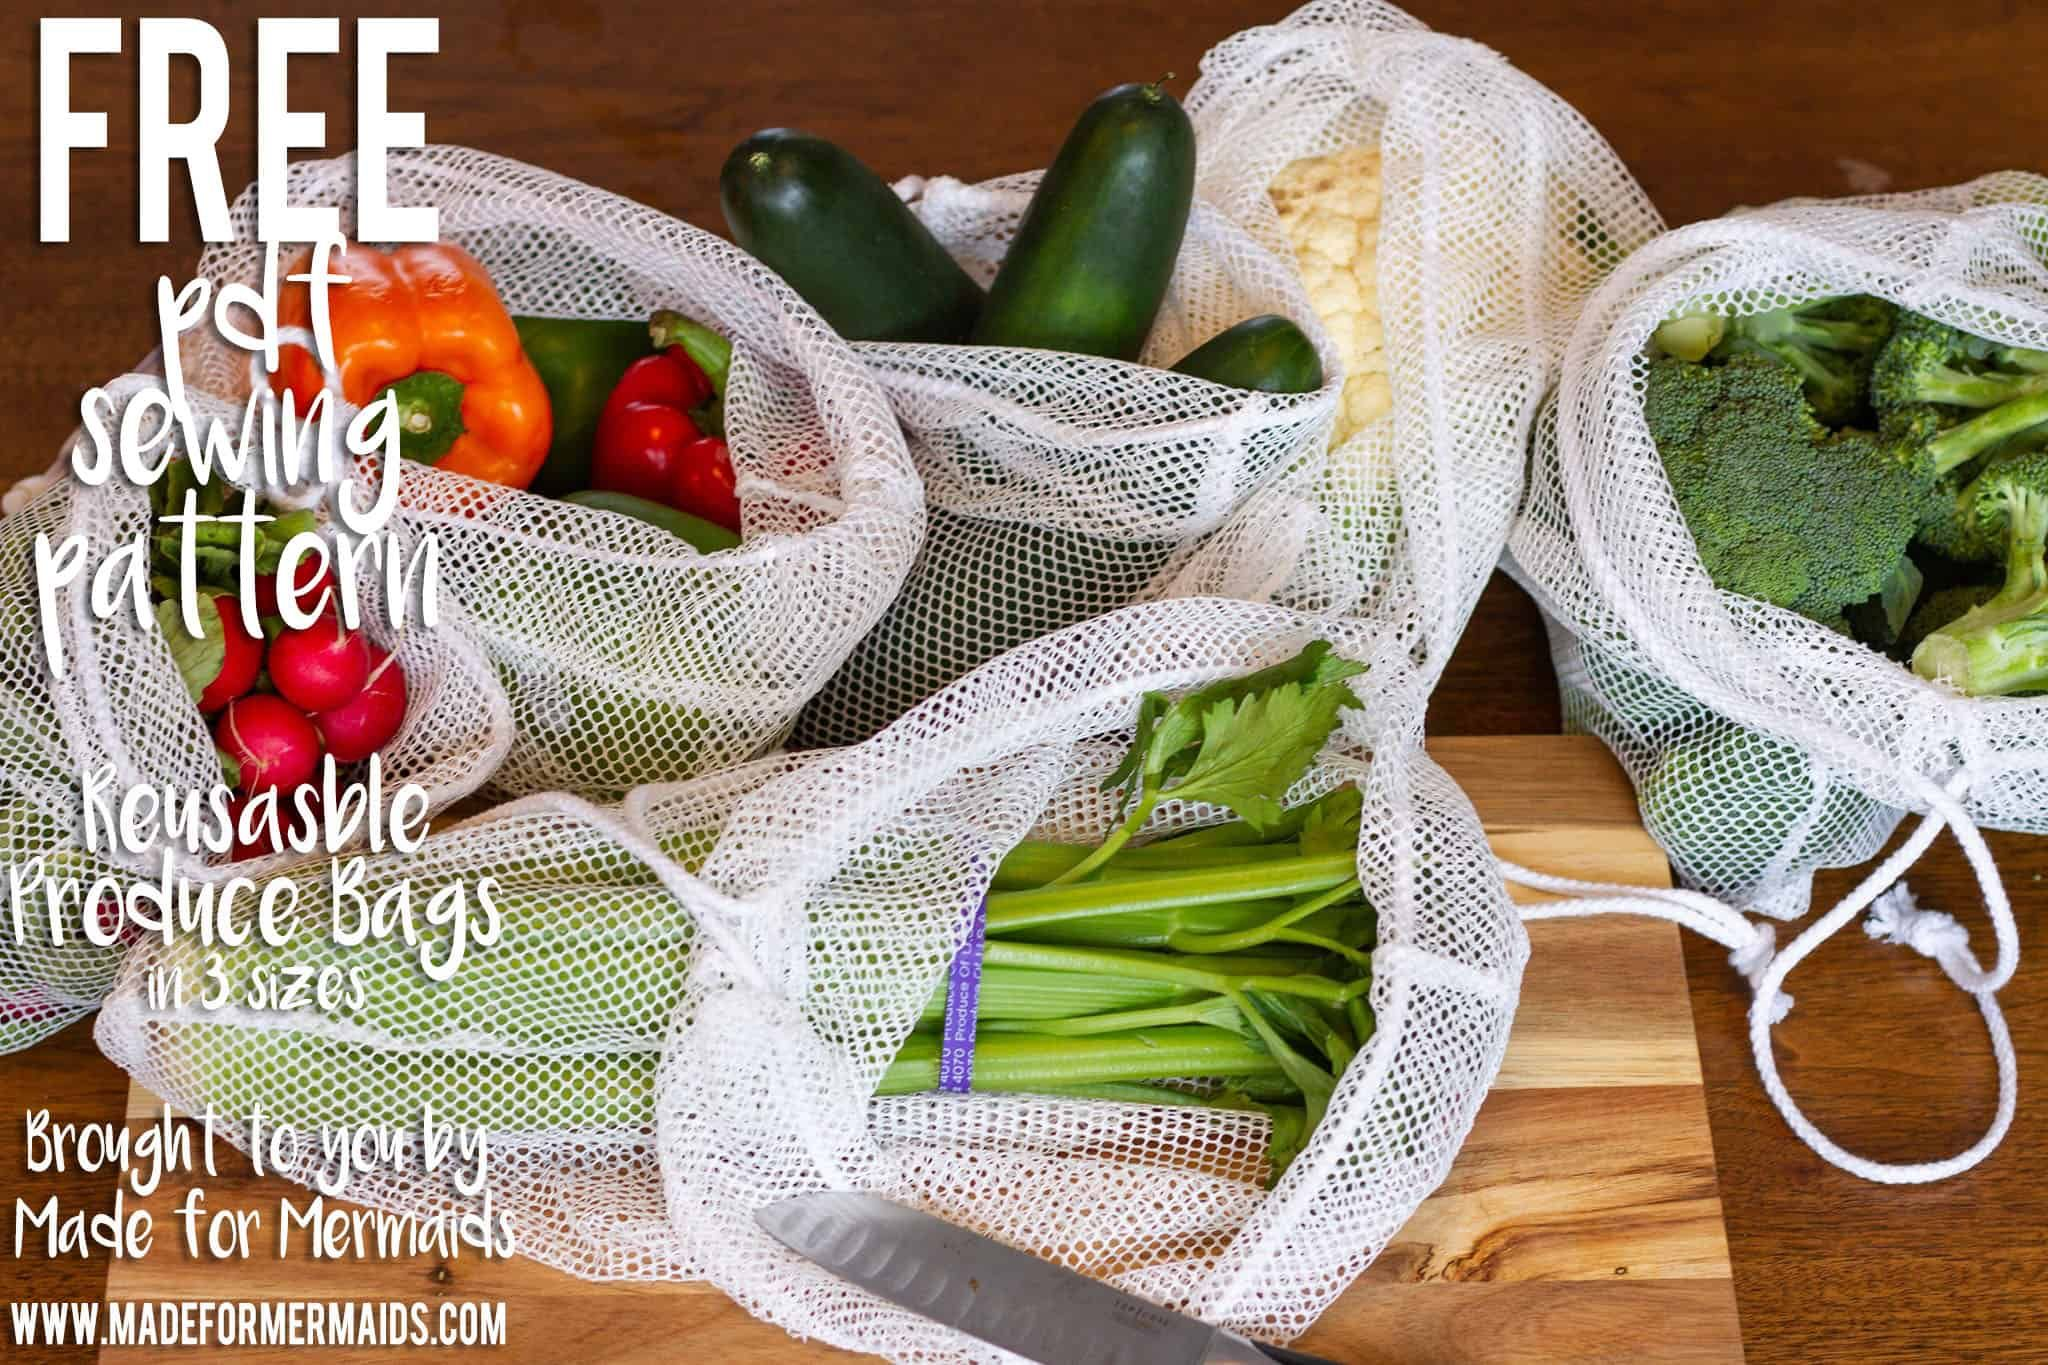 Day 11  Produce Bags - Produce bags, Homemade bags, Bag pattern, Reusable produce bags, Sewing basics, Sewing patterns free - On the 11th day of Christmas, Made for Mermaids gave to me      a reusable produce bag in 3 different sizes!! They are a quick and easy project that are perfect for those looking to reduce